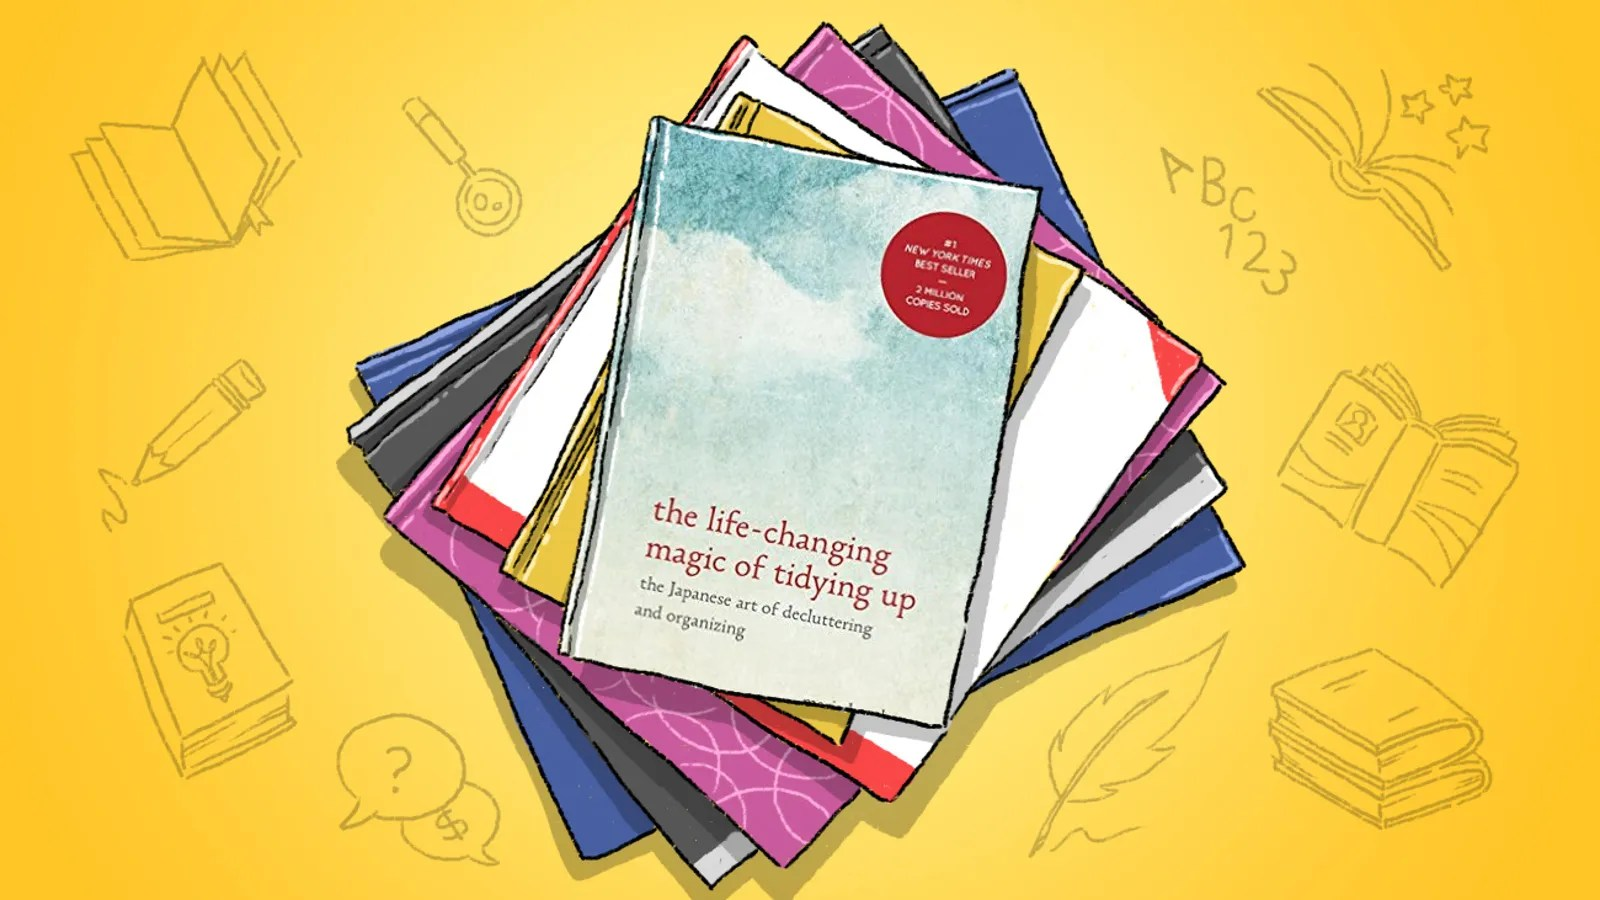 The Life Changing Magic Of Tidying The Life Changing Magic Of Tidying Up Mind Hacking Advice For